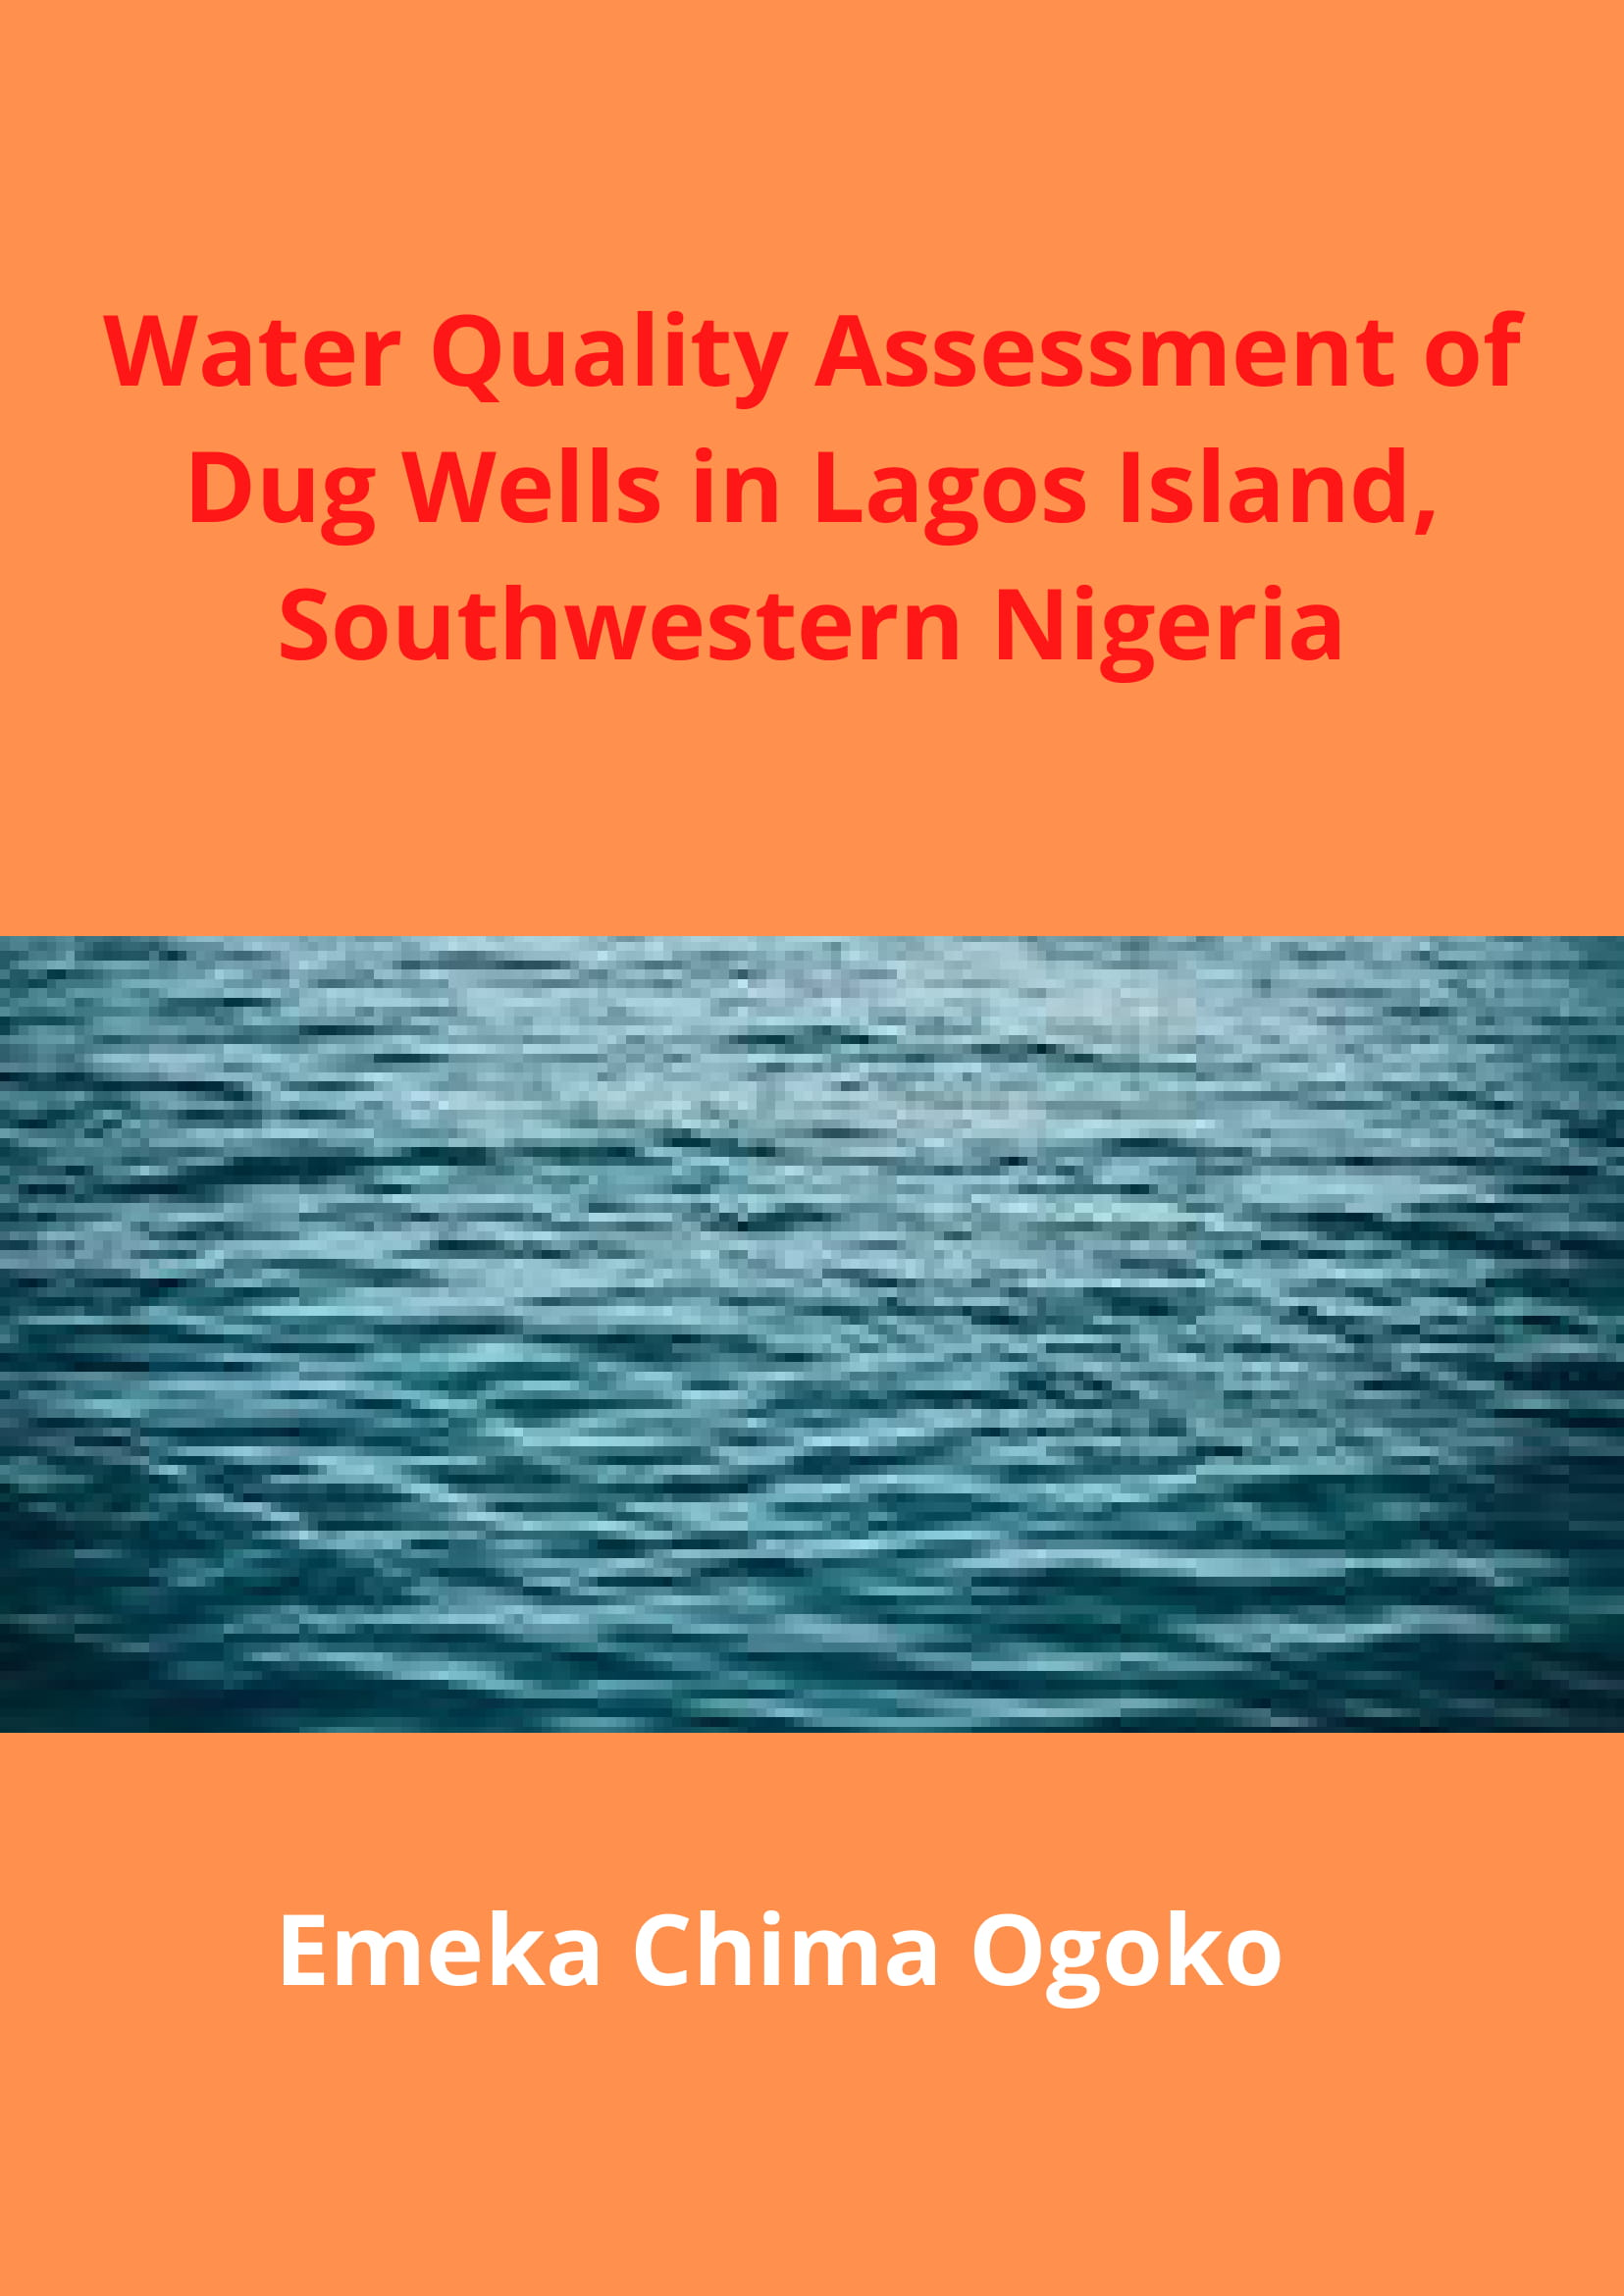 Water Quality Assessment of Dug Wells in Lagos Island SotheWestern Nigeria